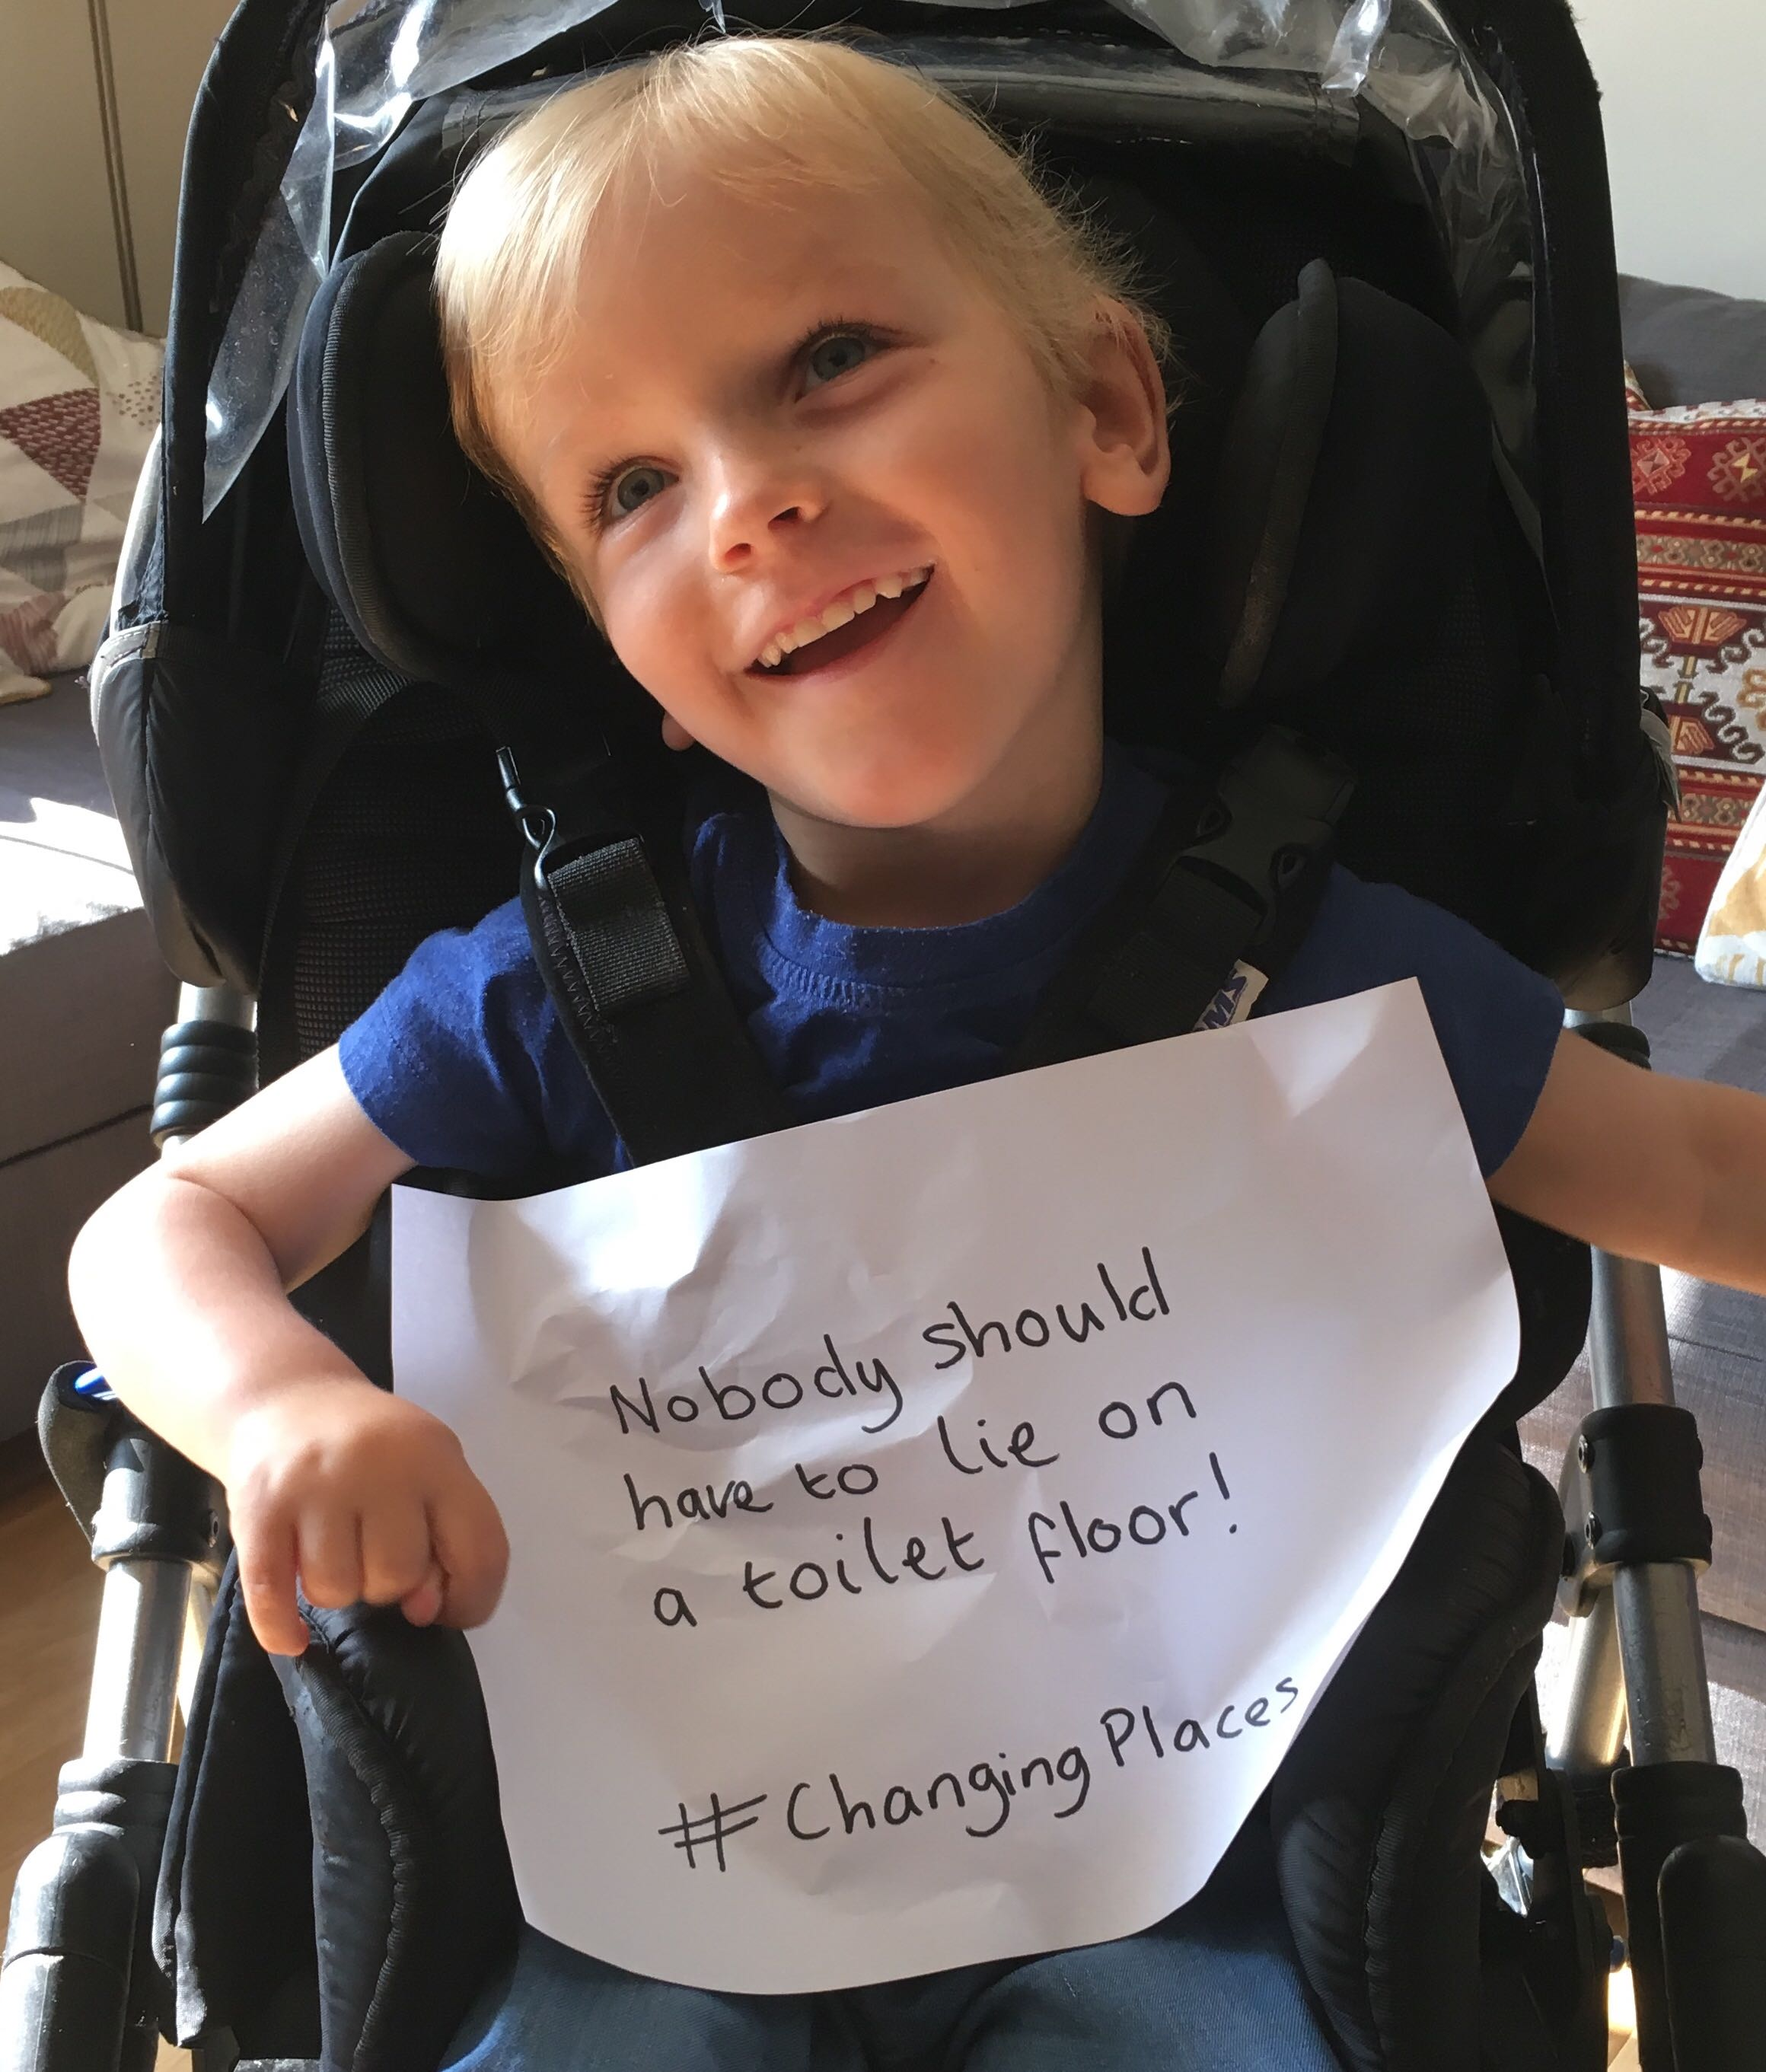 Photo of Quinns holding a handwritten sign that reads 'Nobody should have to lie on a toilet floor! #ChangingPlaces'